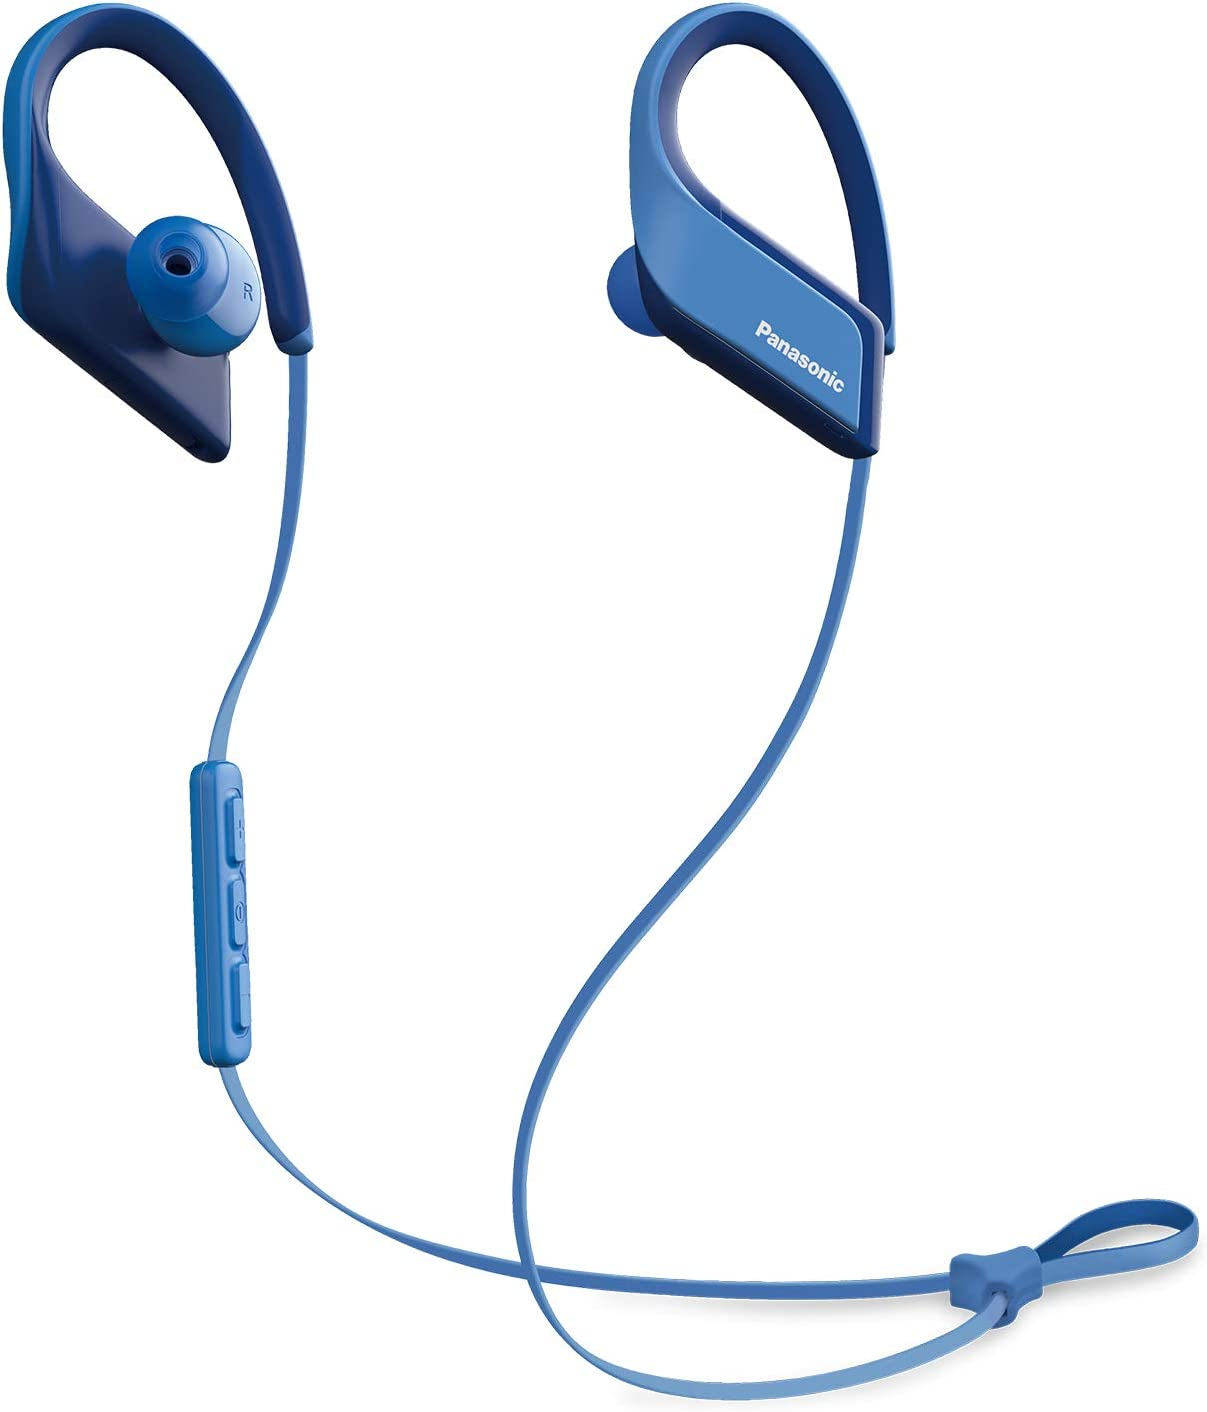 PANASONIC Wings Sport Headphones are Ultra-Light Wireless Bluetooth Sport Earbud 3D Flex Sport Clips with Microphone and Call/Volume Controller, IPX5 Rated Water-Resistant - RP-BTS35-A (Blue)